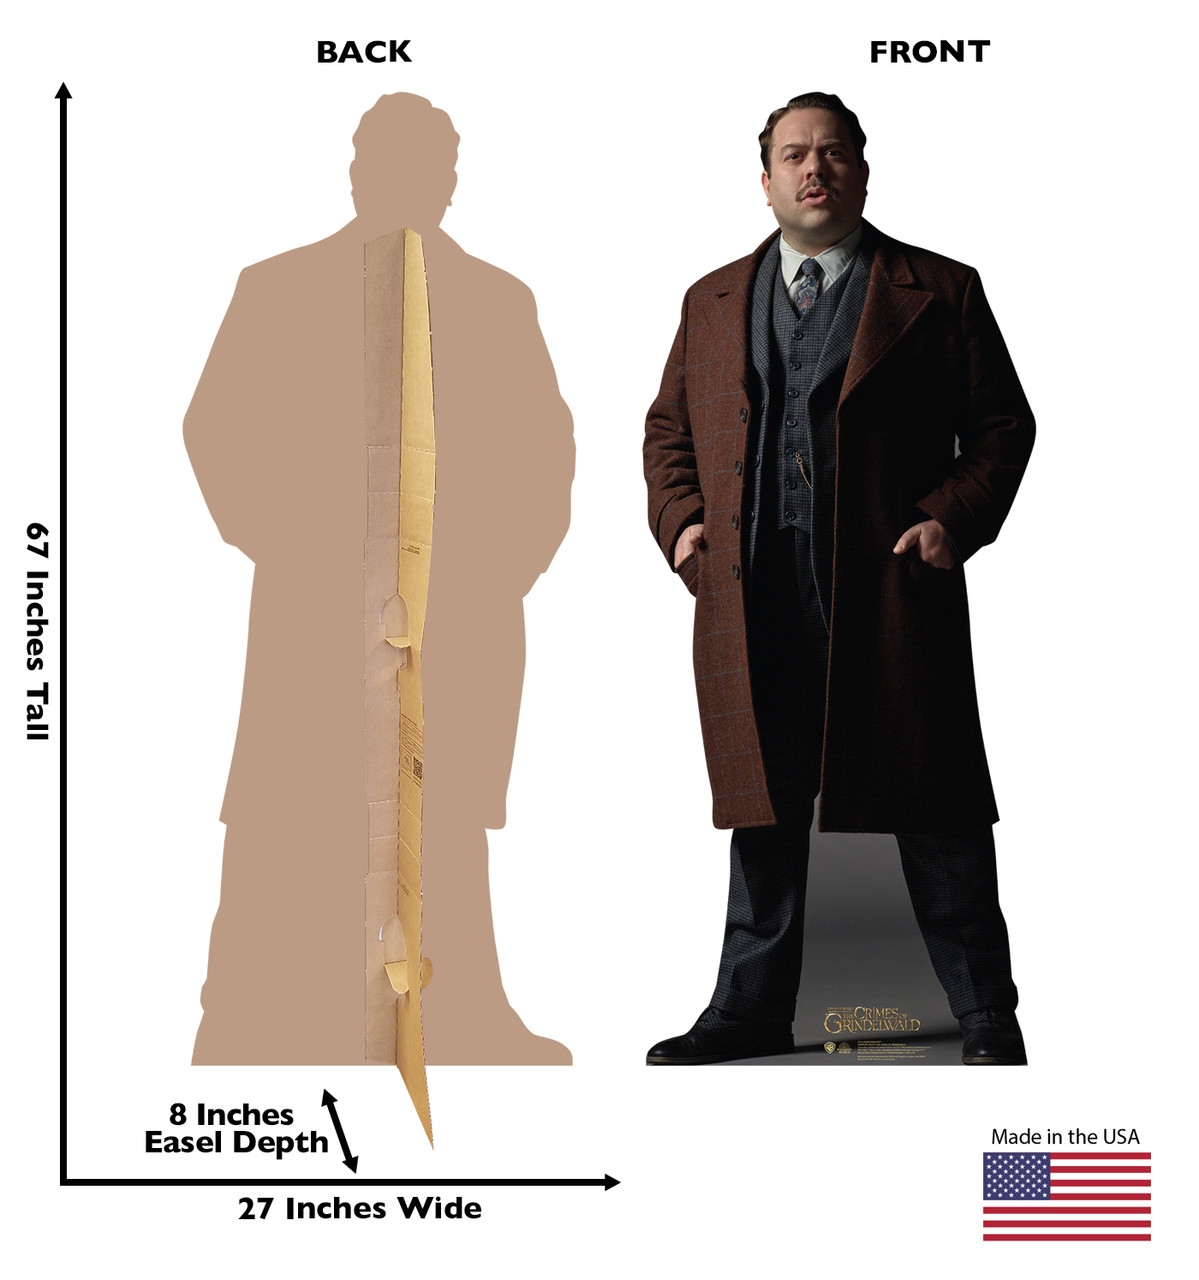 Jacob Kowalski Lifes-size Cardboard Standee Front and Back with Dimensions.